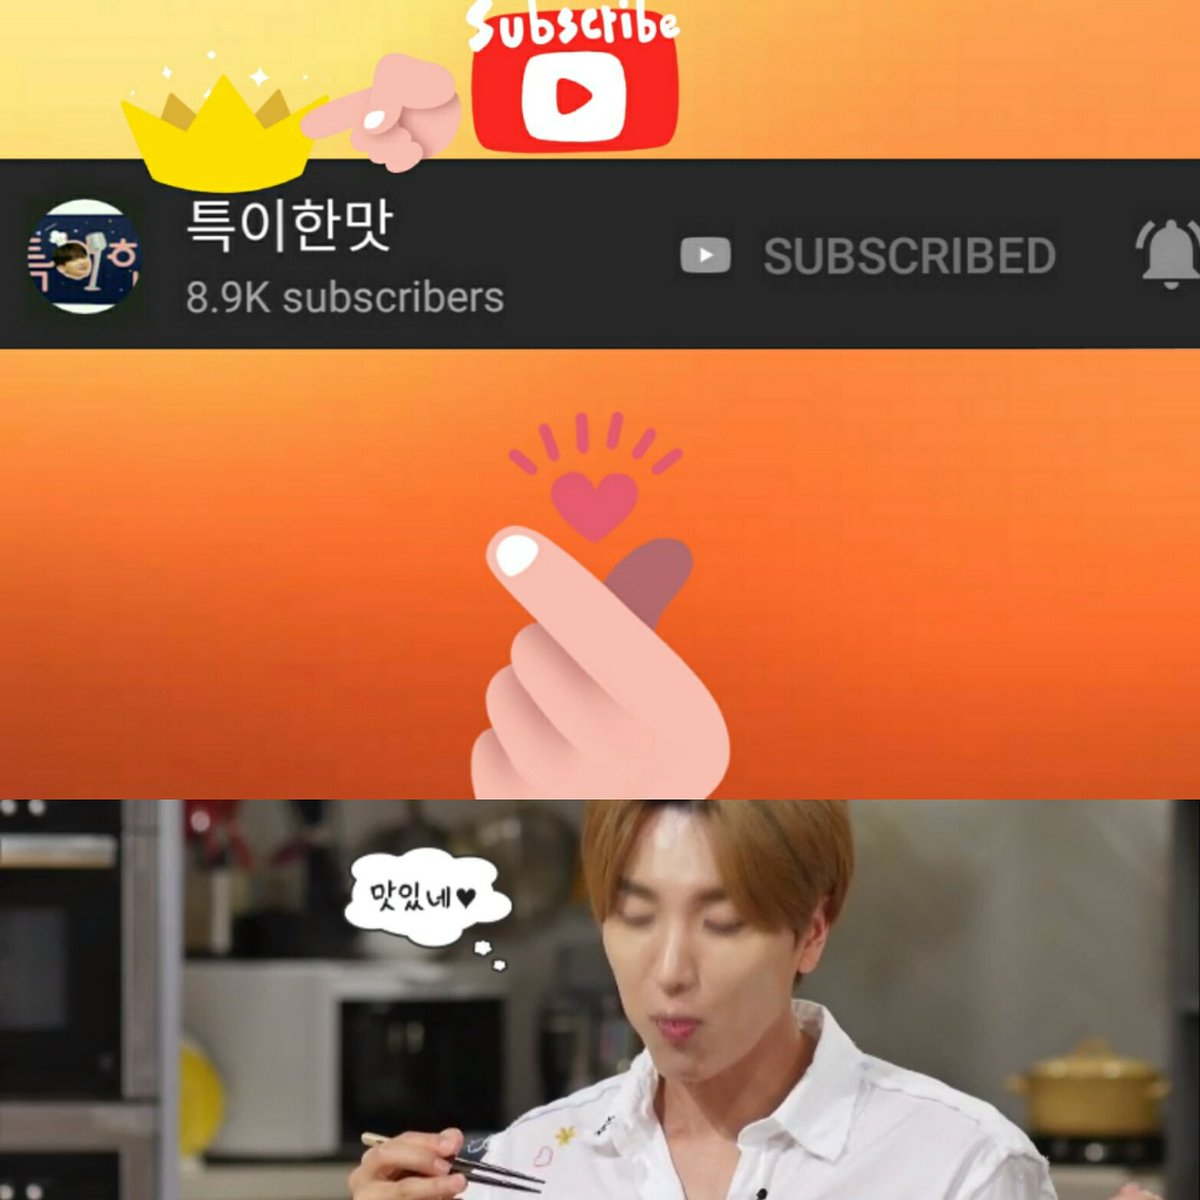 Don't forget to #subscribe to @special1004 's #Youtube #유튜브 channel #특이한맛 so you don't miss #healthy #recipes on 1st live 20190718  21:00 PM (KST) 😇👉 https://youtu.be/CsvvHNygD3A  👑👼💙🌟🍀 #leeteuk #이특 #イトゥク #박정수 #박_천사 #スーパージュニア #슈퍼주니어 #SUPERJUNIOR